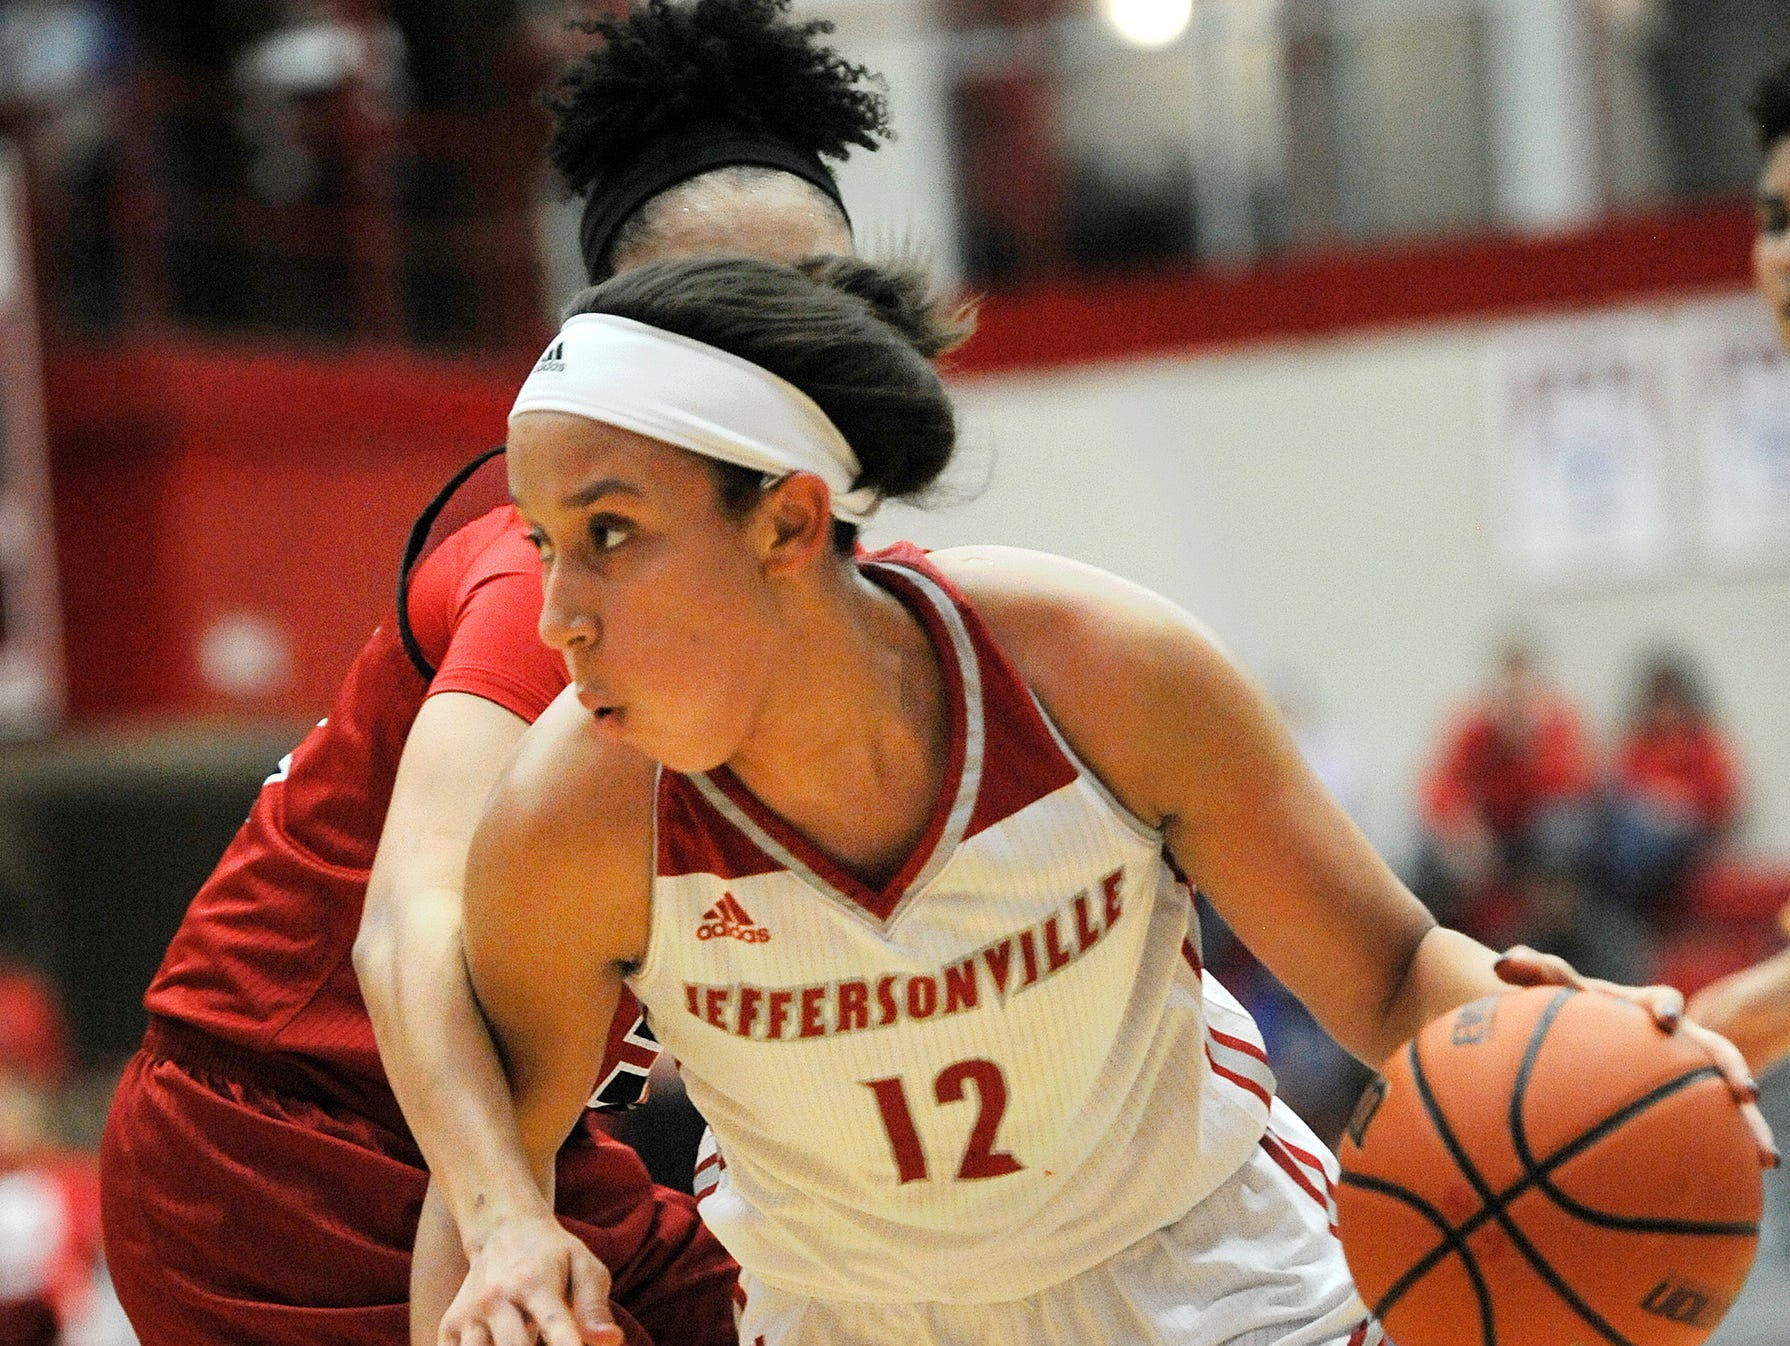 Jeffersonville's Jacinta Gibson (12) drives to the basket against New Albany on Friday at Jeffersonville High School. Jan.20, 2017